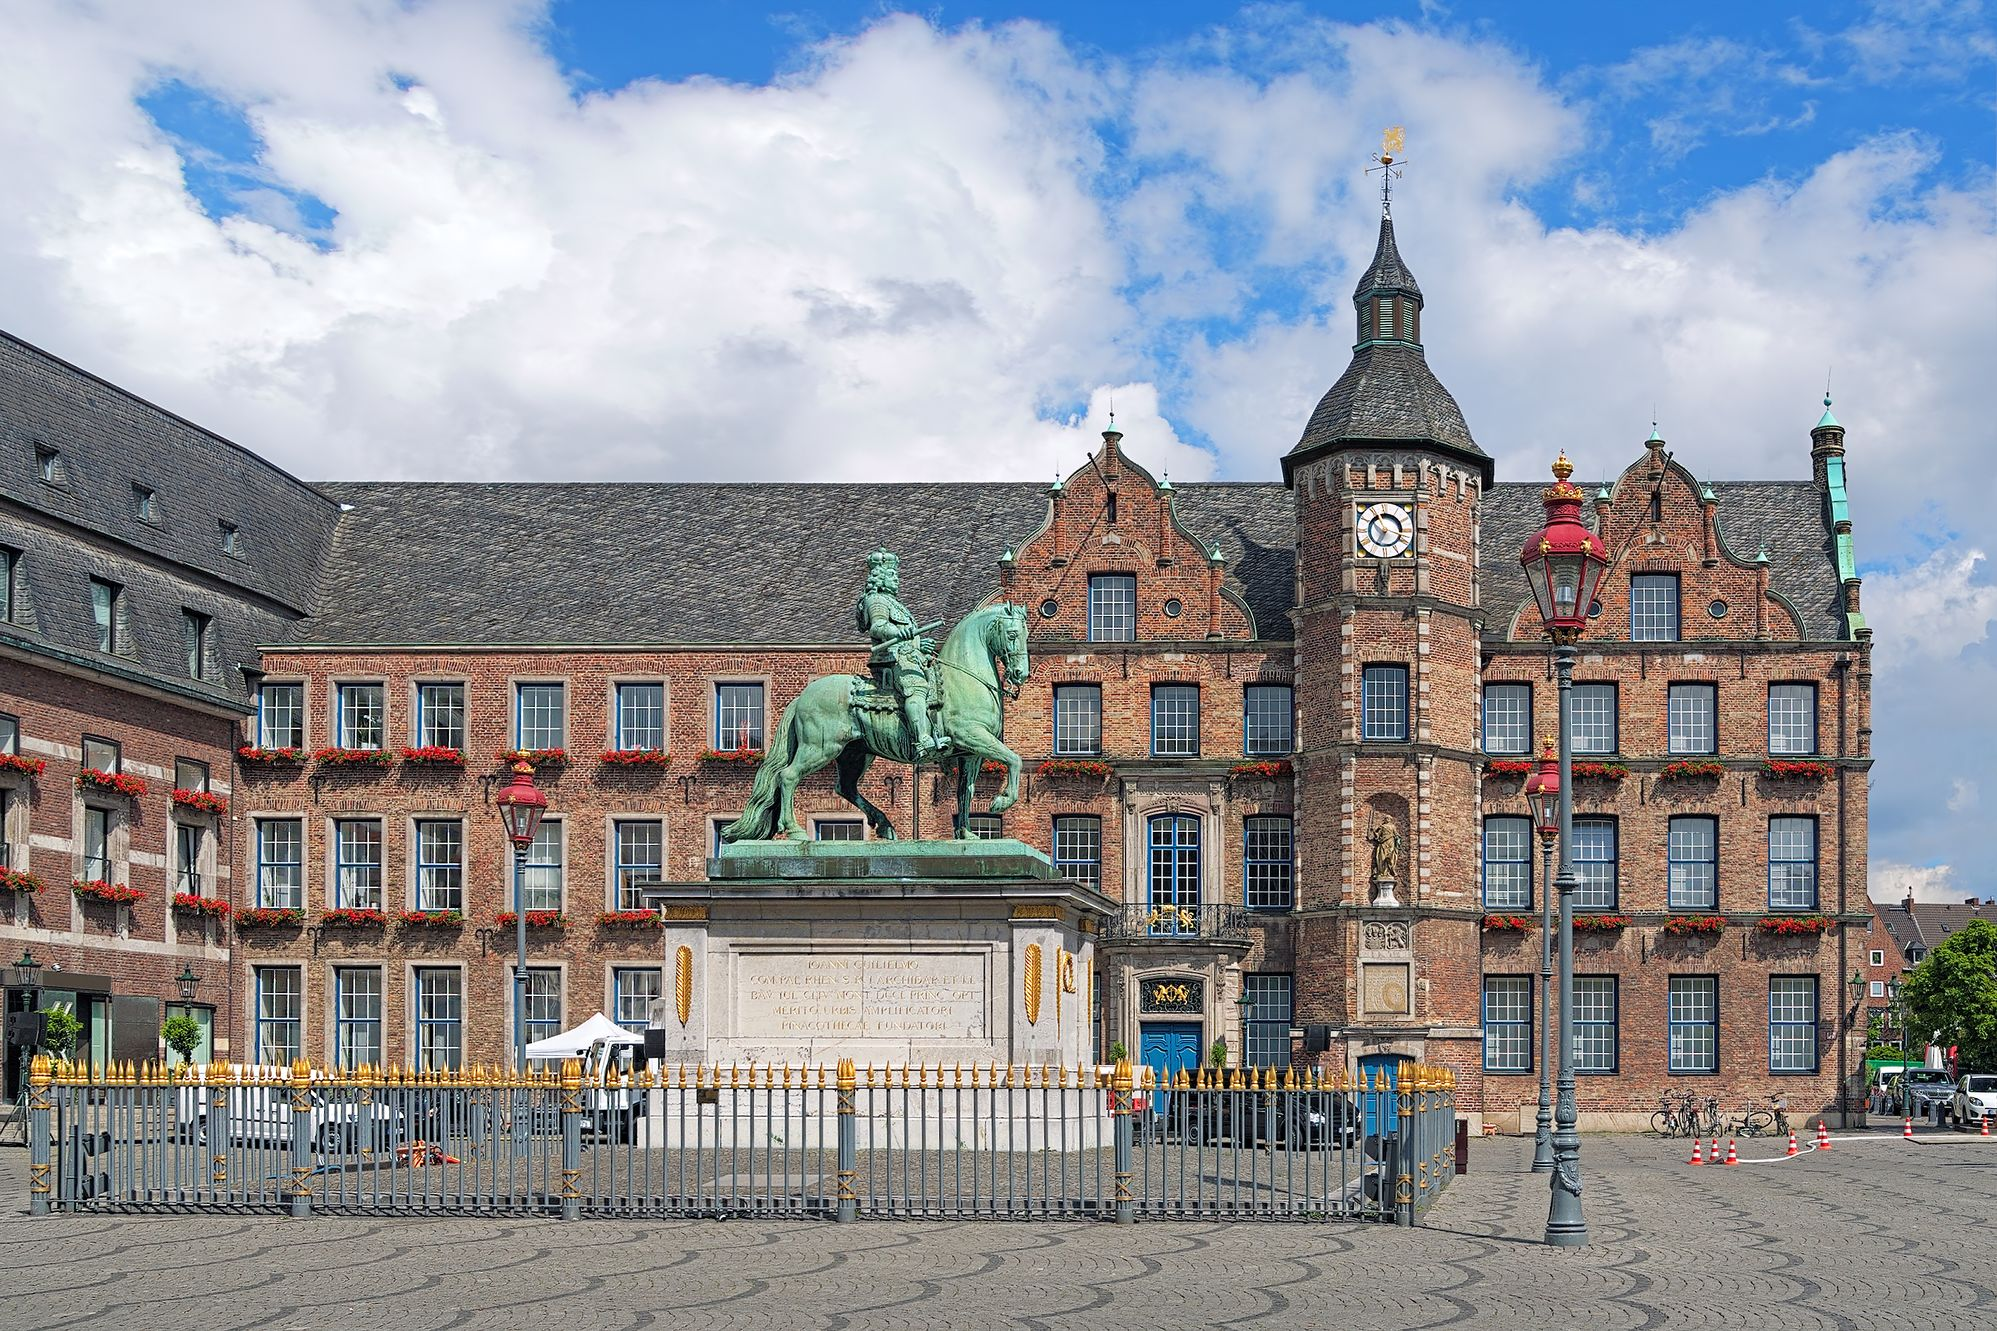 Old Town Square, Dusseldorf